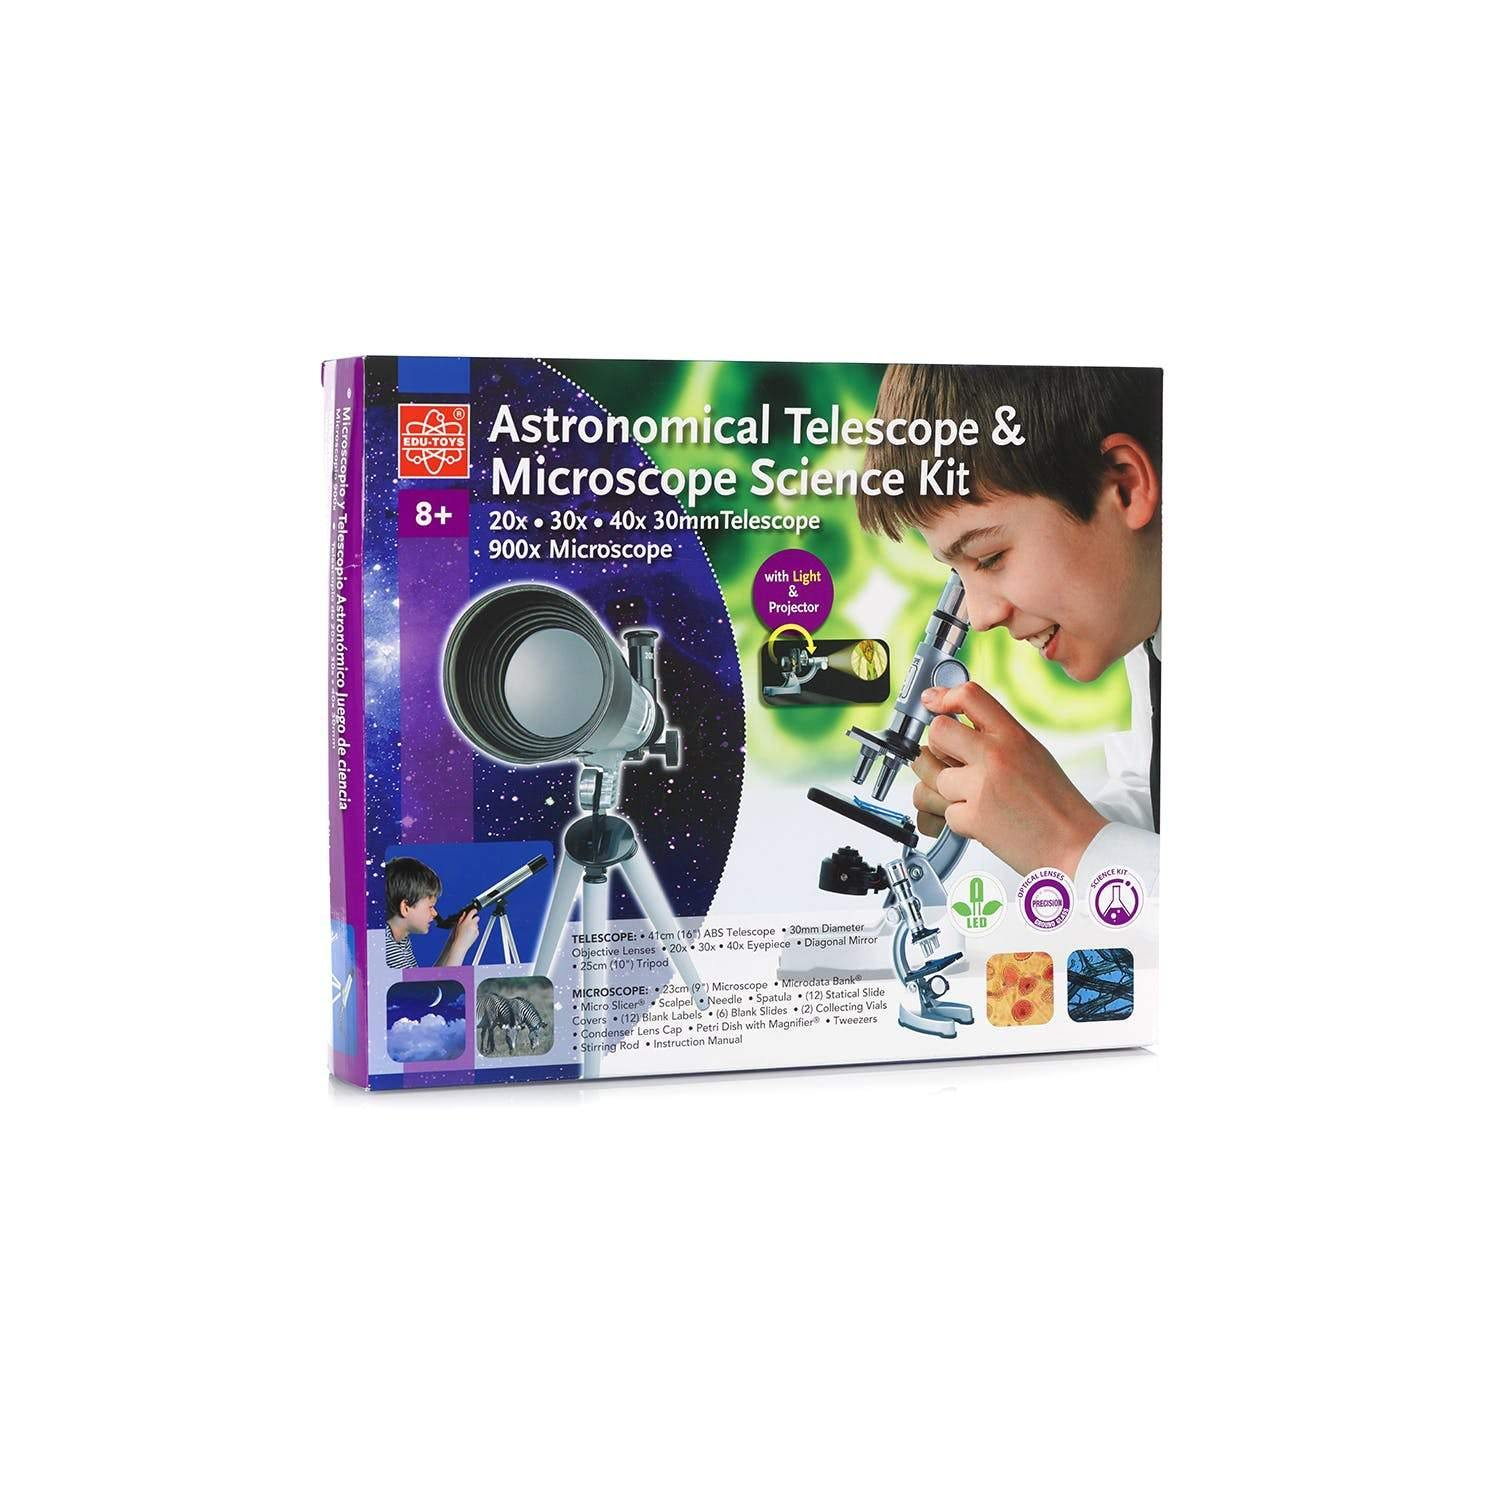 Astronomical Telescope and Microscope Science Kit